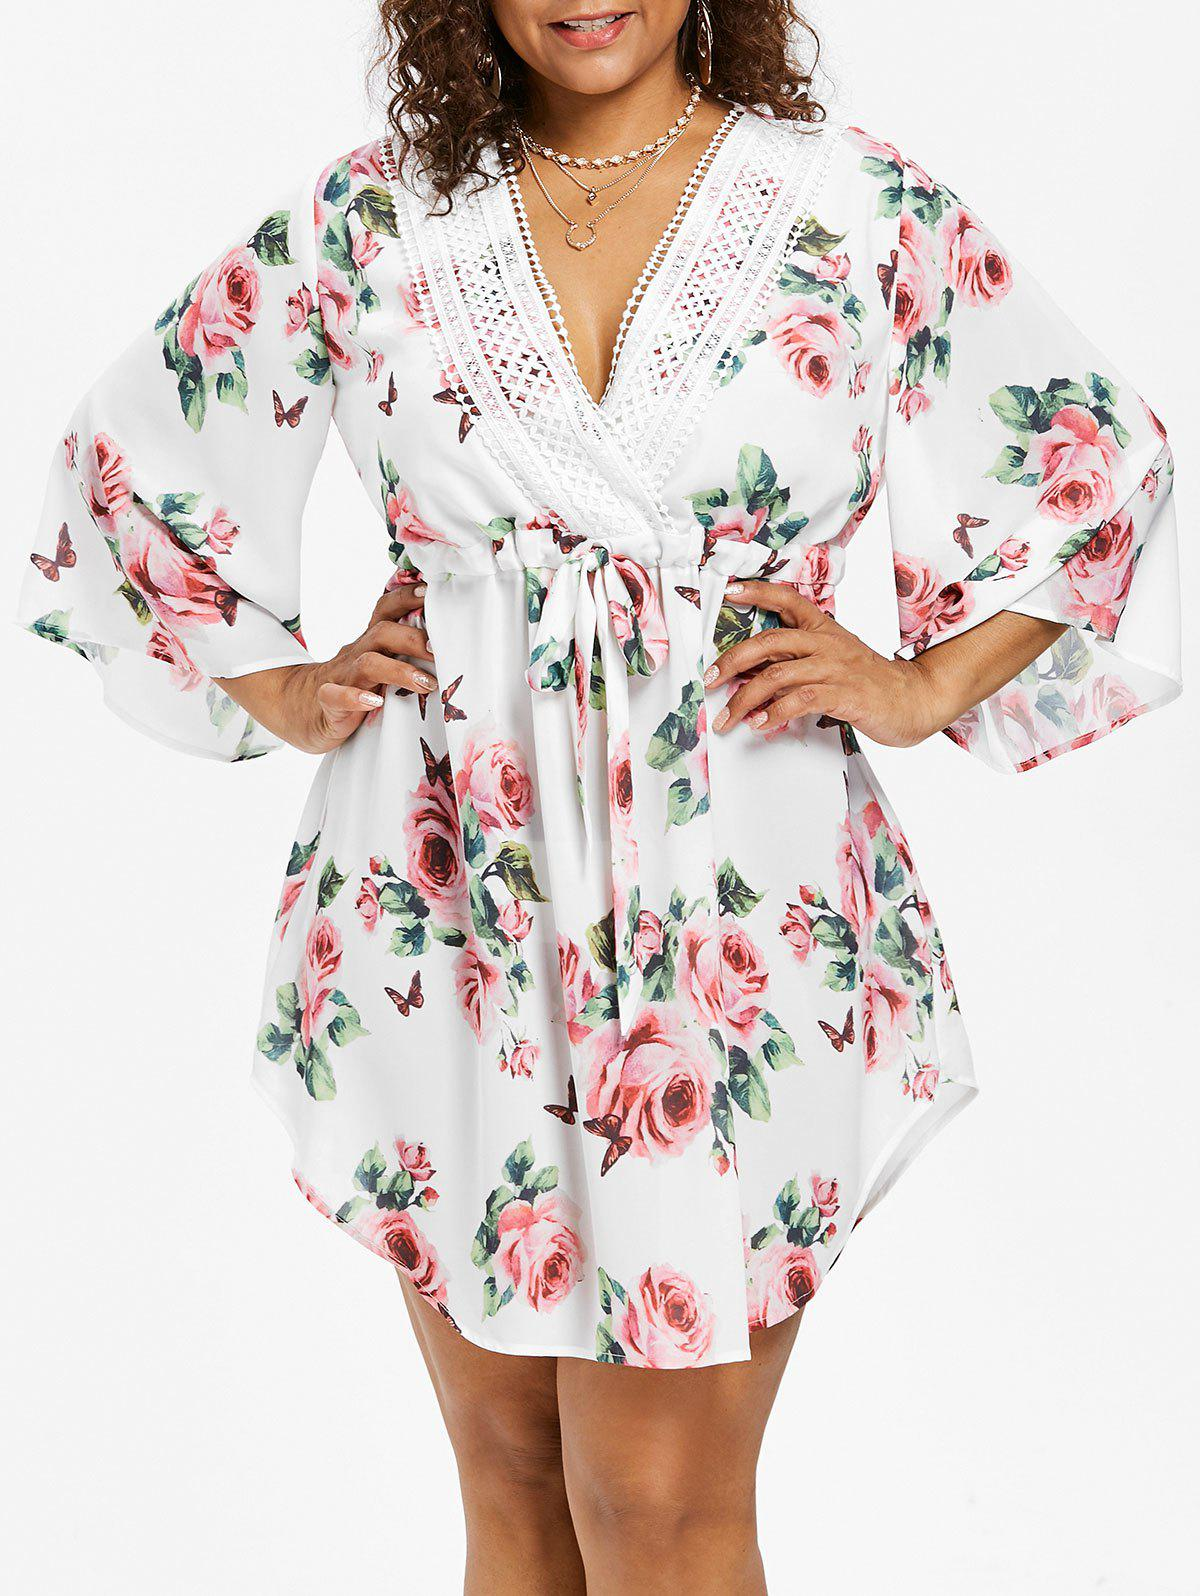 Hot Drawstring Waist Plus Size Floral Print Dress